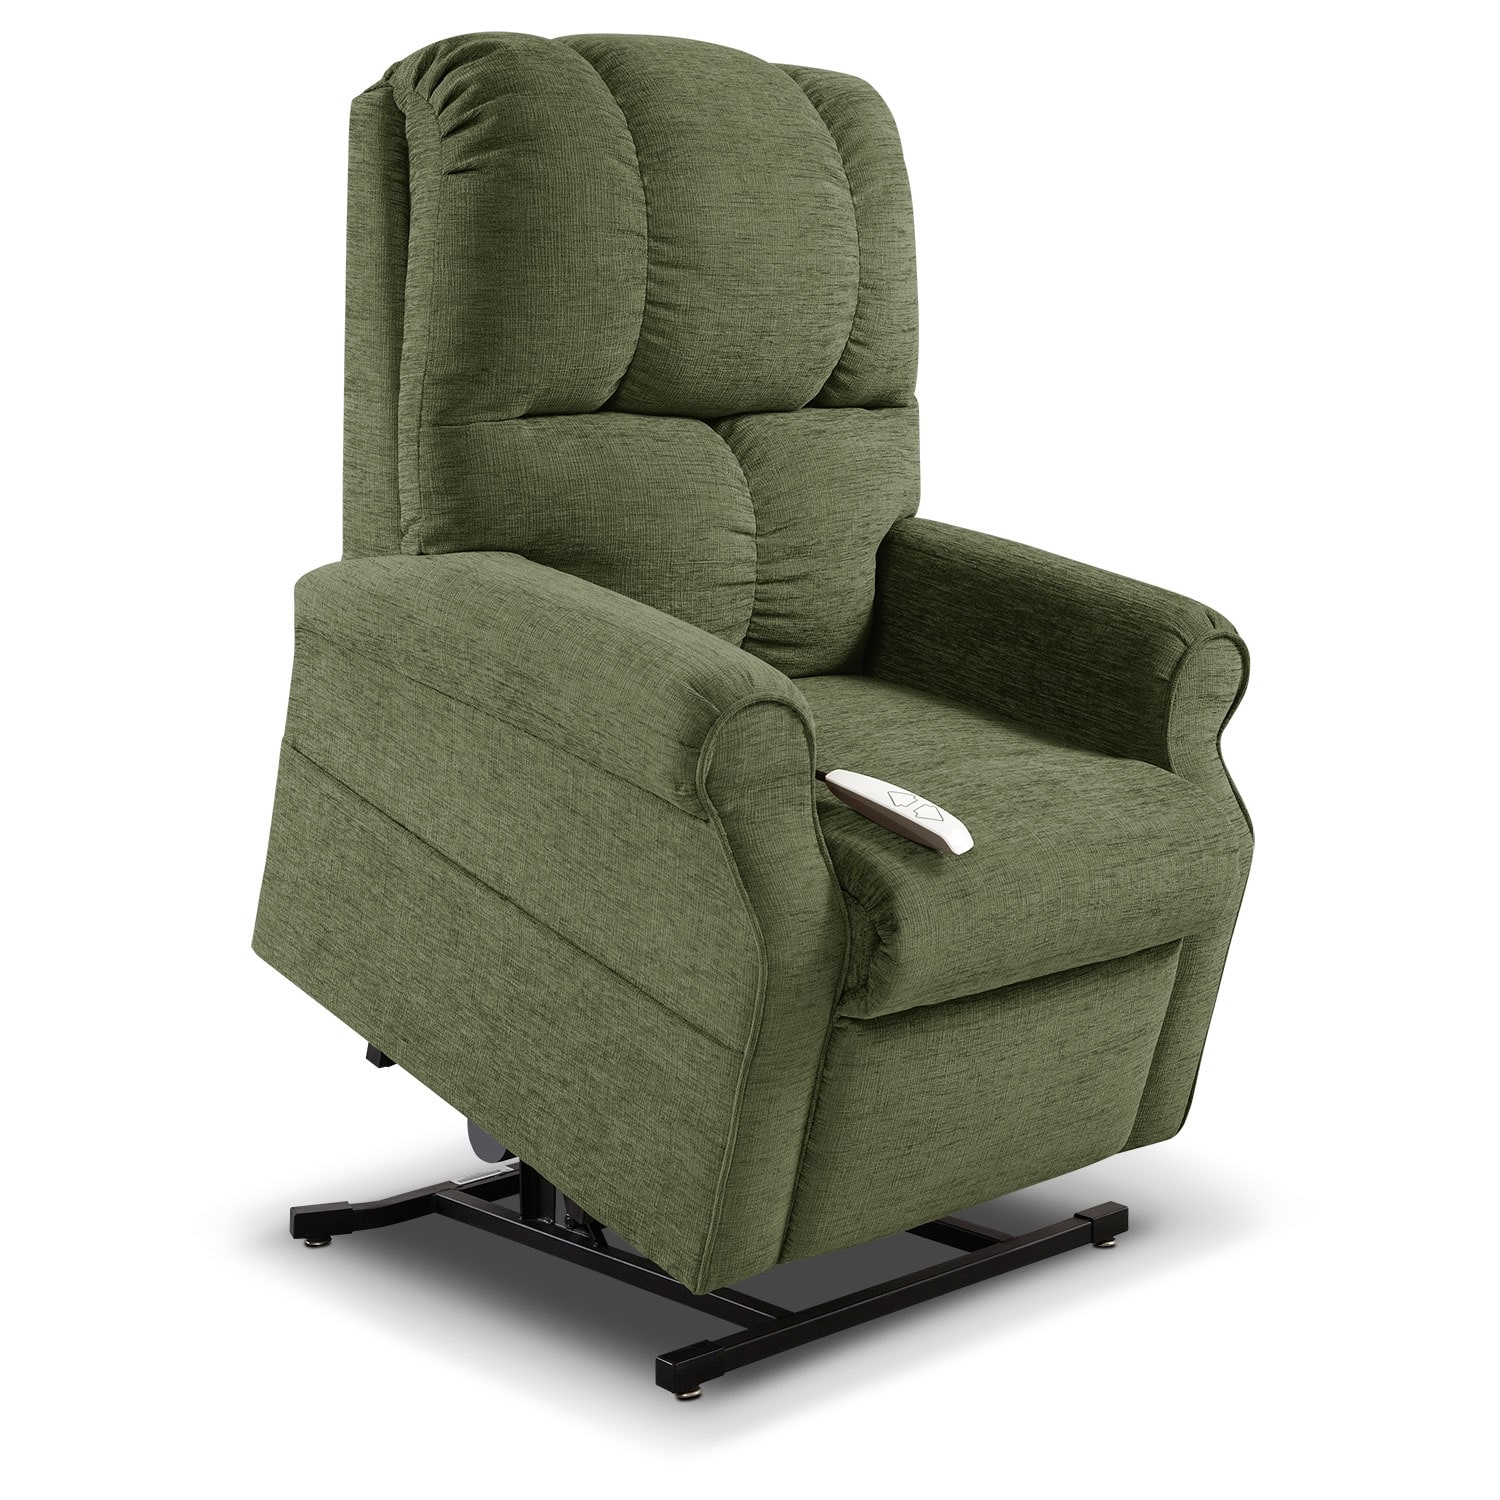 Recliner Lift Chairs Tillie Lift Chair Value City Furniture